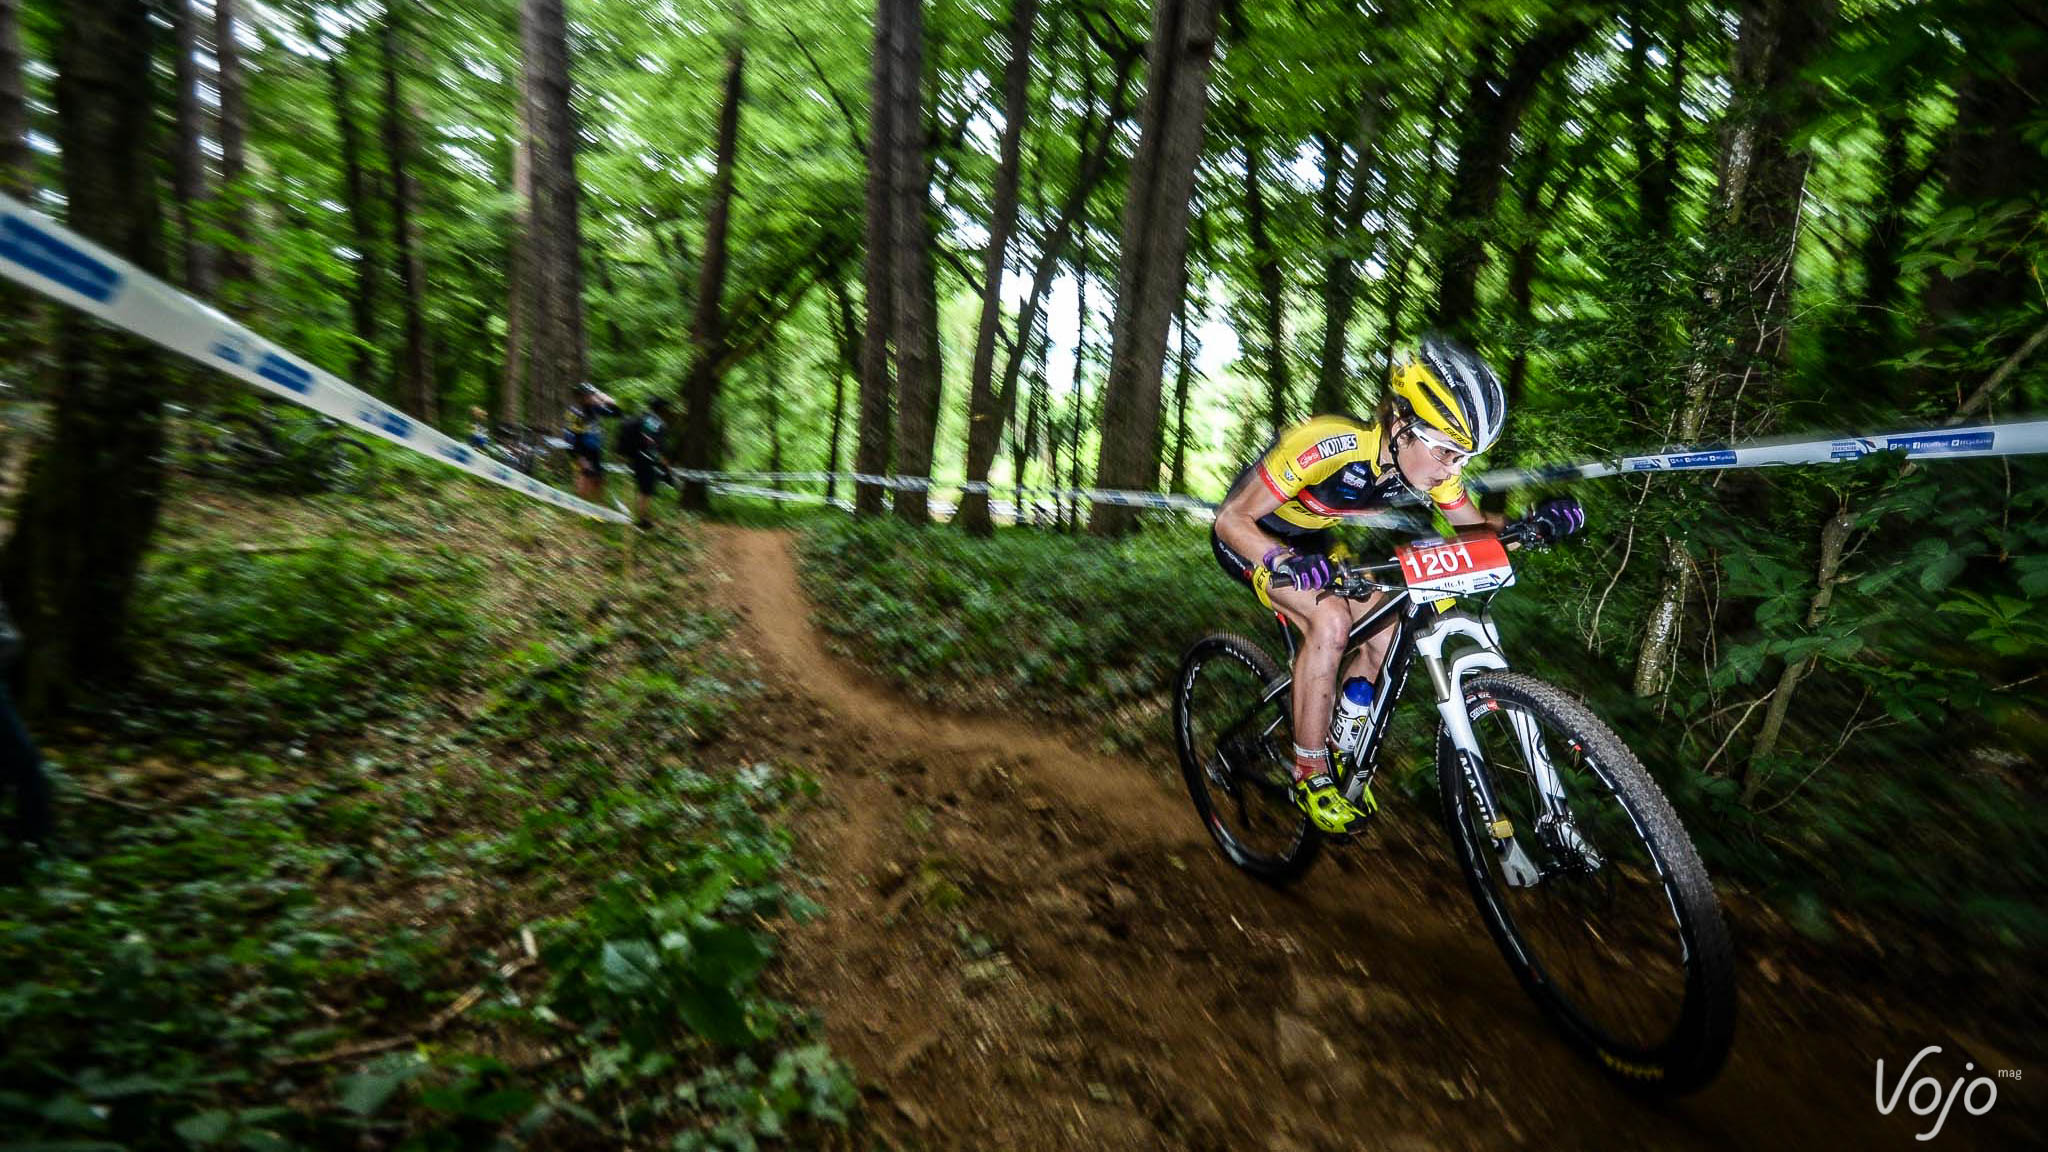 Coupe_France_VTT_Lons_le_Saunier_Clauzel_Metzler_Enaux_Copyright_Romain_Laurent_VojoMag-2